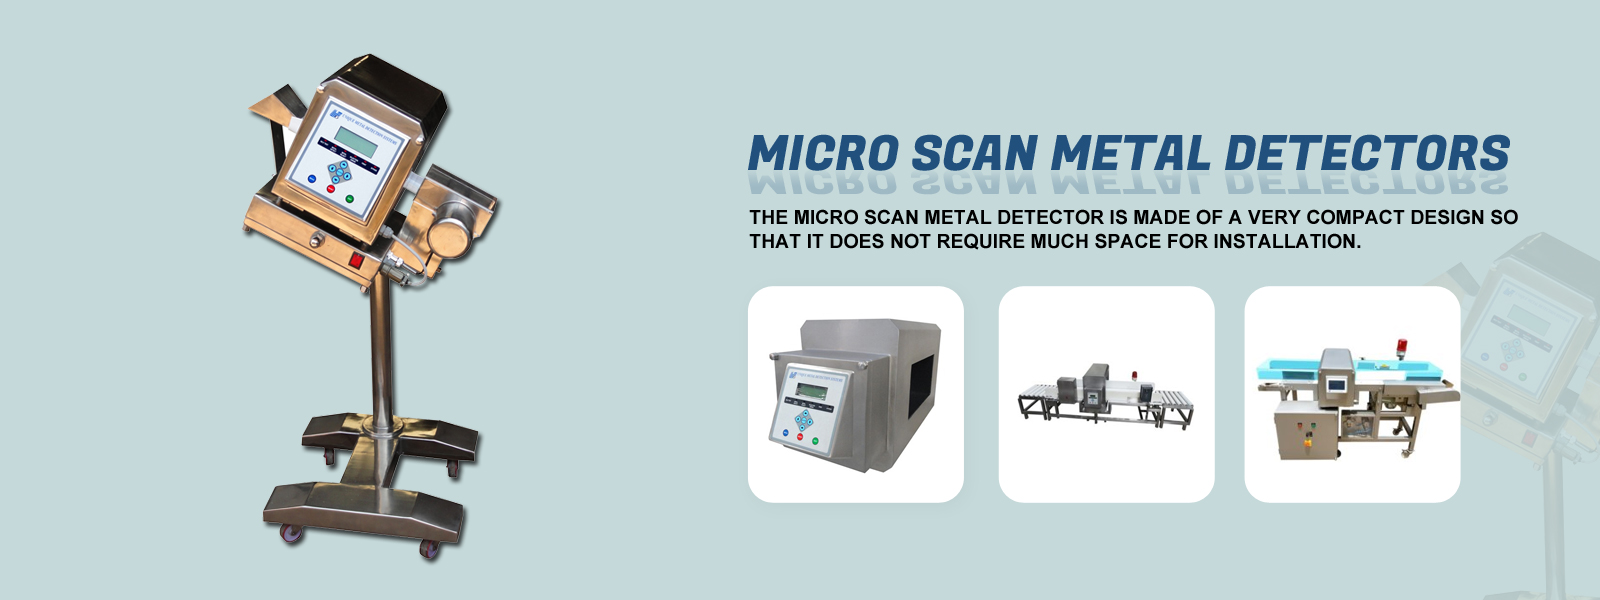 Micro Scan Metal Detectors Manufactures in GOA